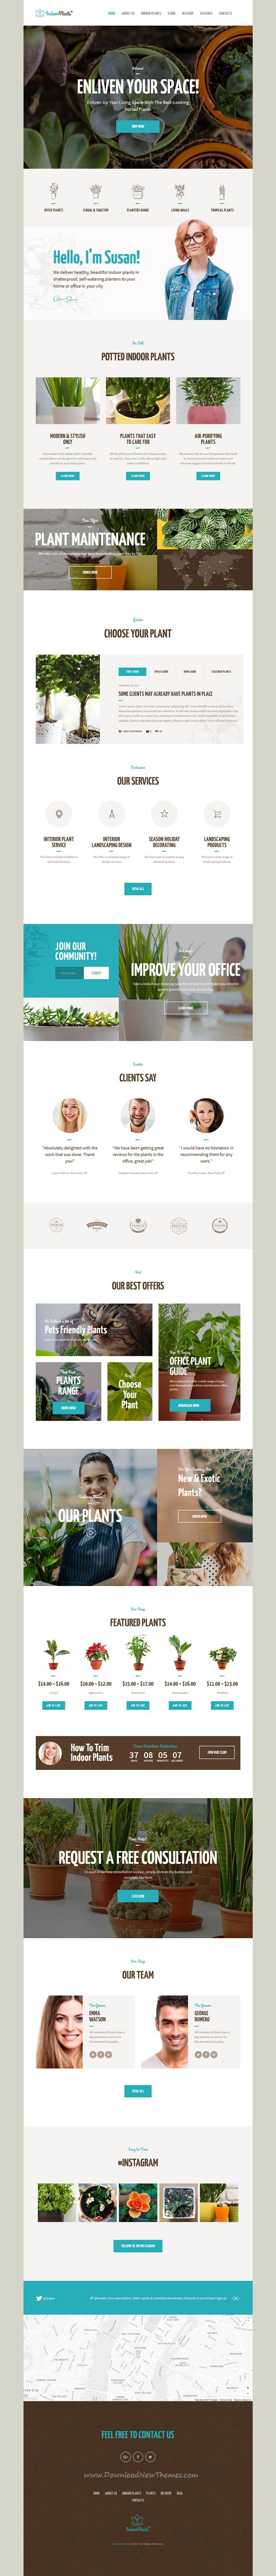 Indoor Plants | Gardening & Houseplants WordPress Theme | Pinterest